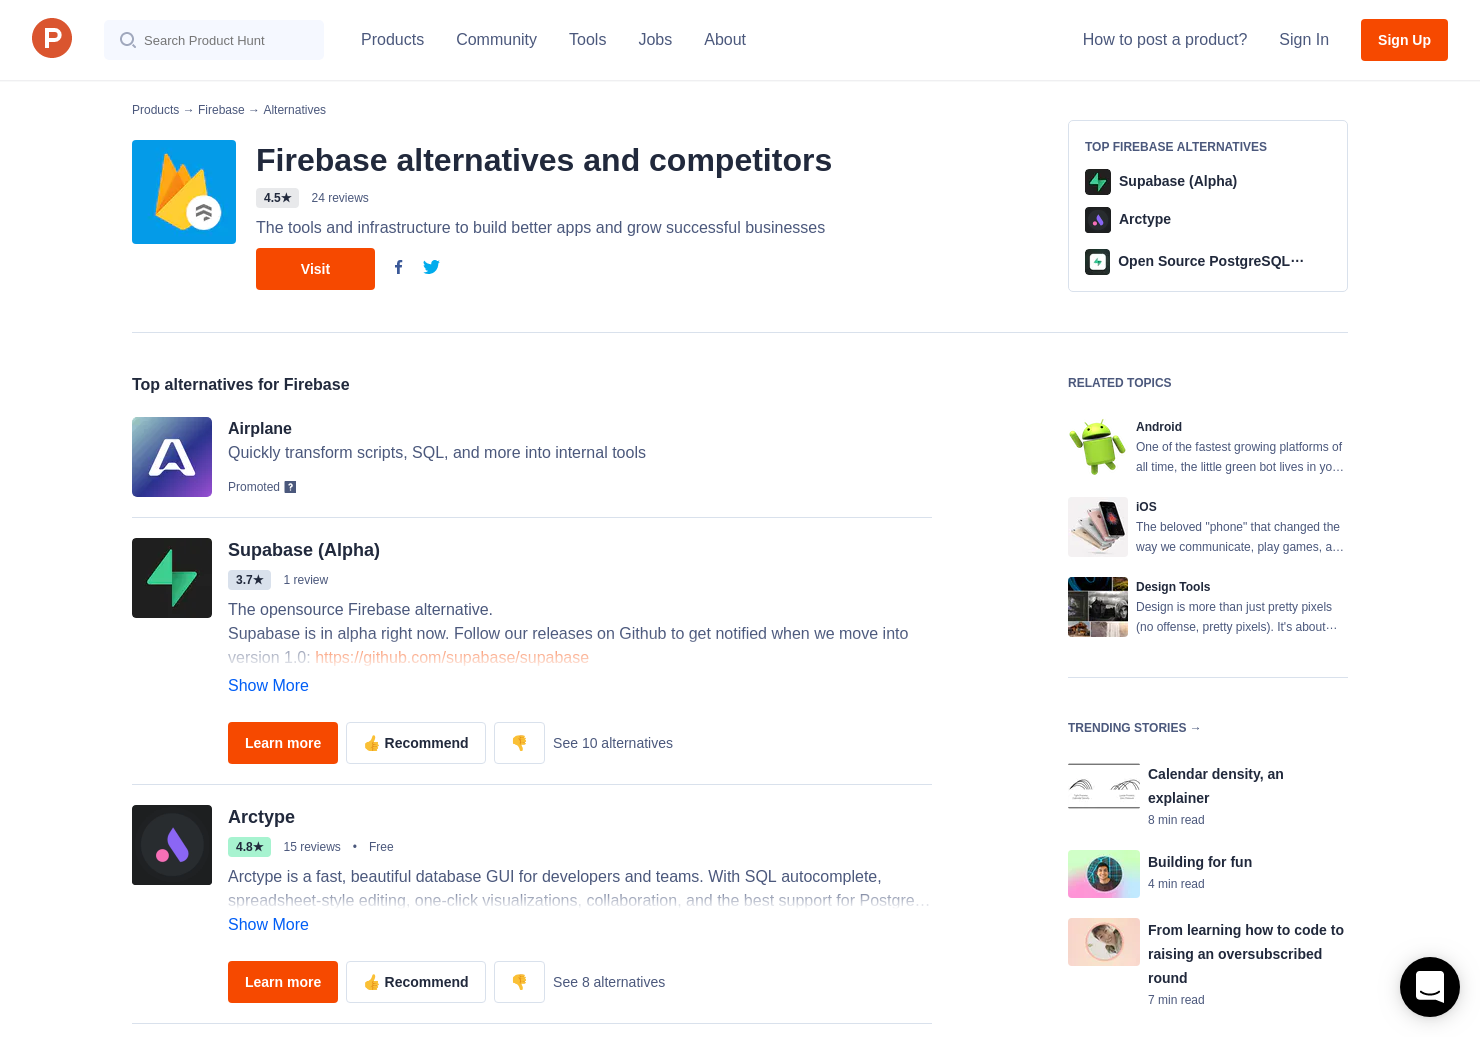 9 Alternatives to Cloud Firestore, by Firebase | Product Hunt